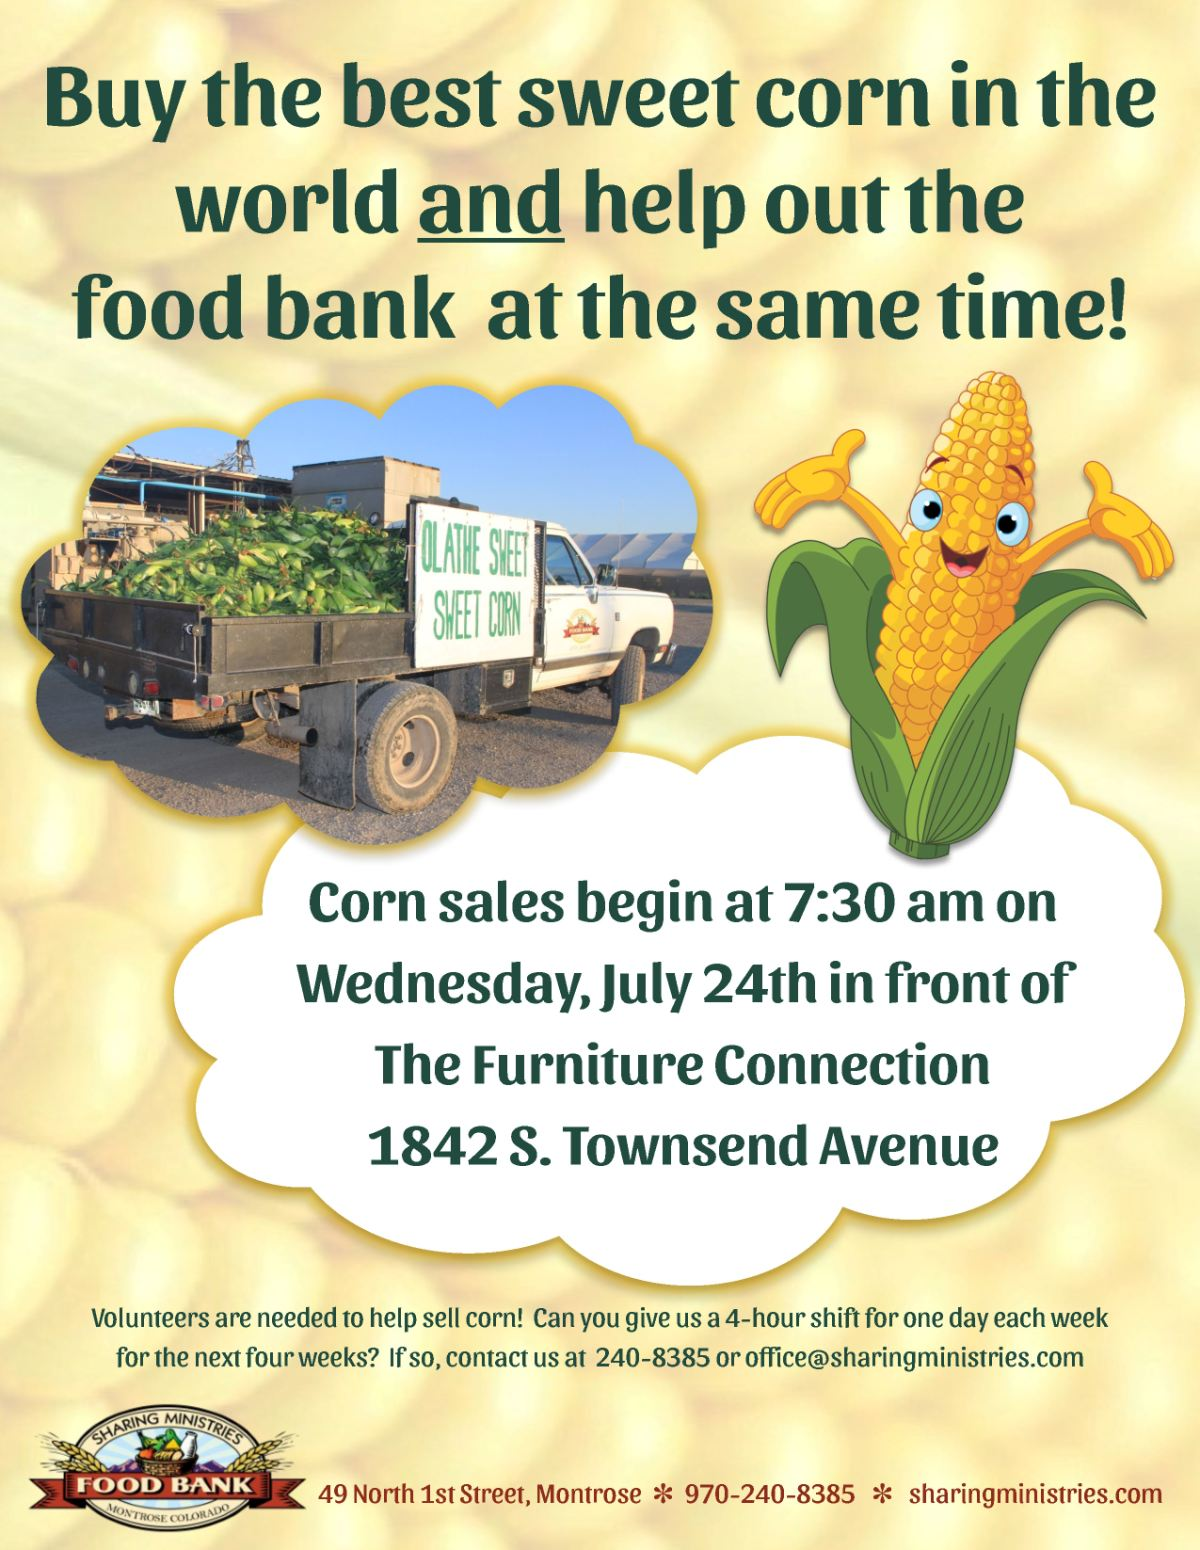 Corn sales begin at 7:30 am on Wednesday, July 24th in front of The Furniture Connection, 1842 S. Townsend Avenue. Volunteers are needed to help sell corn! Can you give us a 4-hour shift one day each week for the next four weeks? If so, contact 240-8385 or office@sharingministries.com.